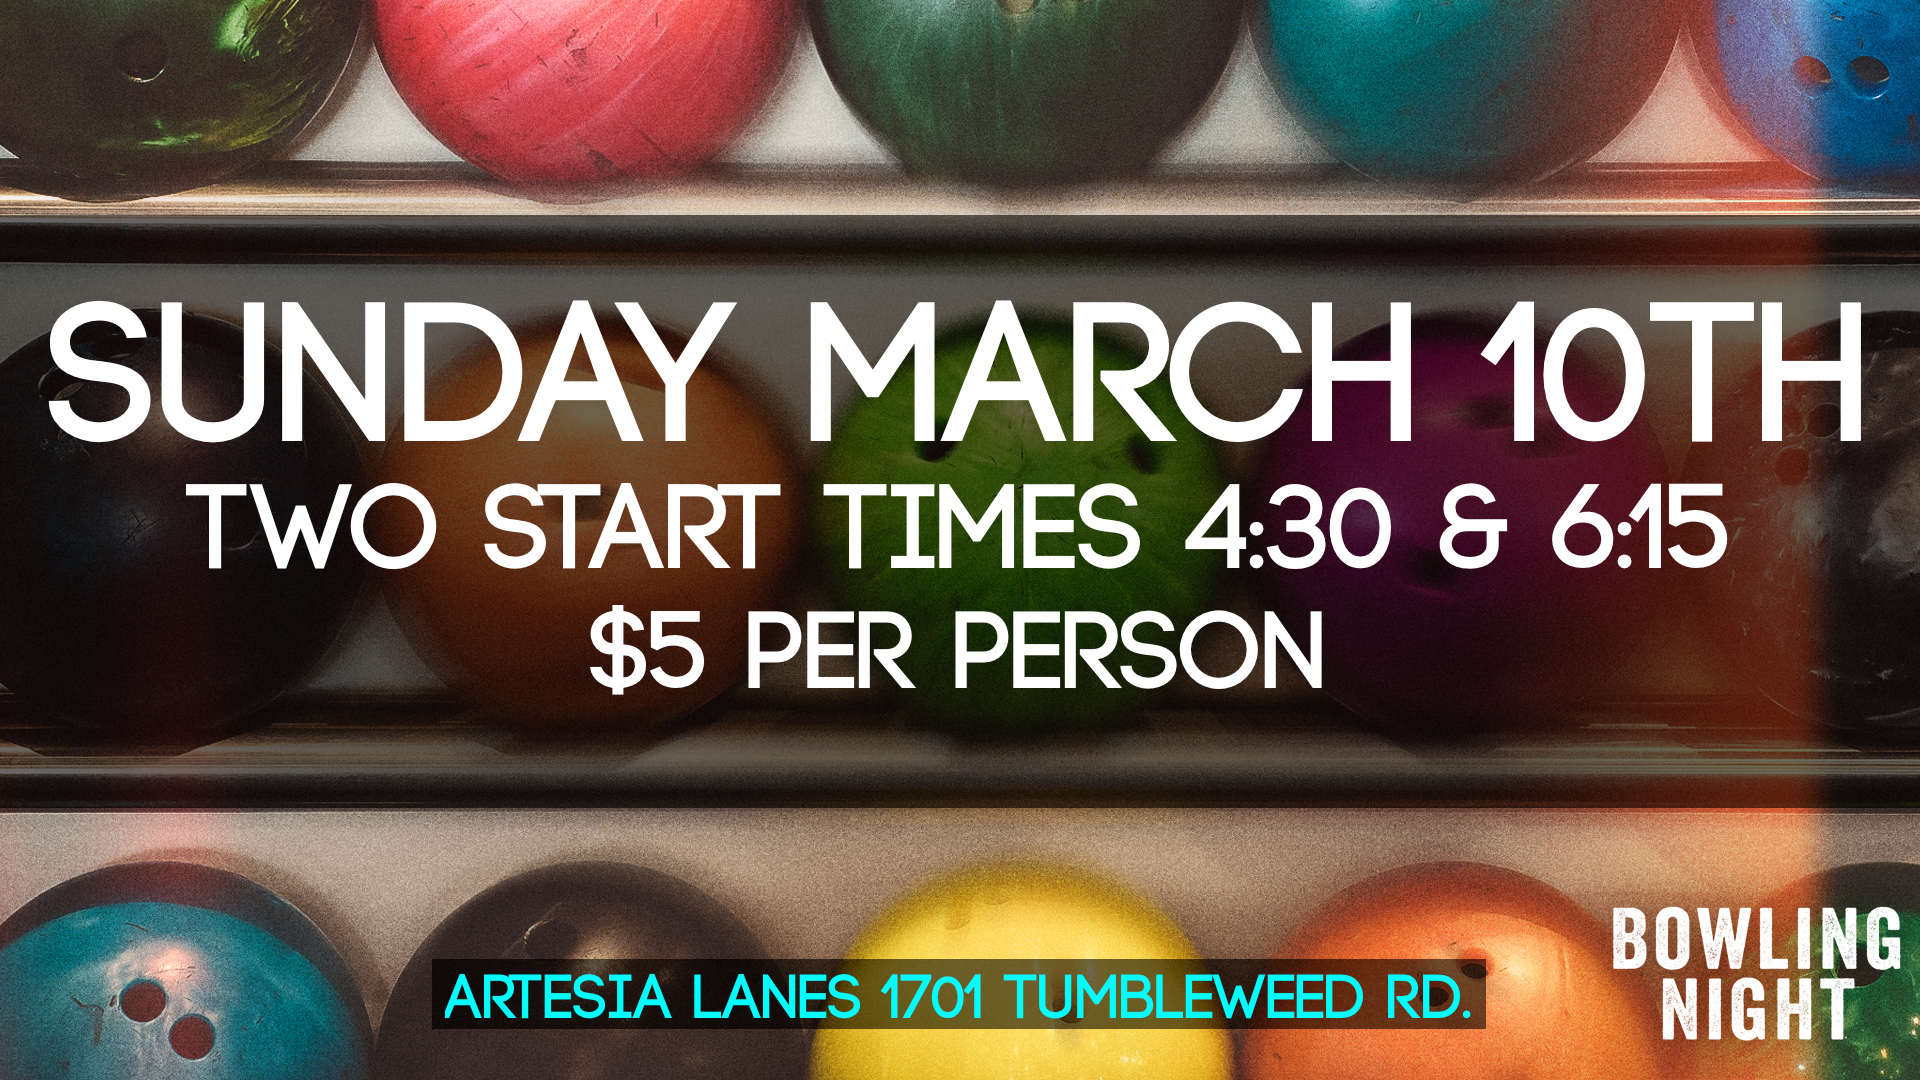 We are going to rent out the bowling out for a family outing.  Get your family signed up for Sunday March 10th to go bowling.  There are two times you can sign up for 4:30 & 6:15.  Its going to be great.